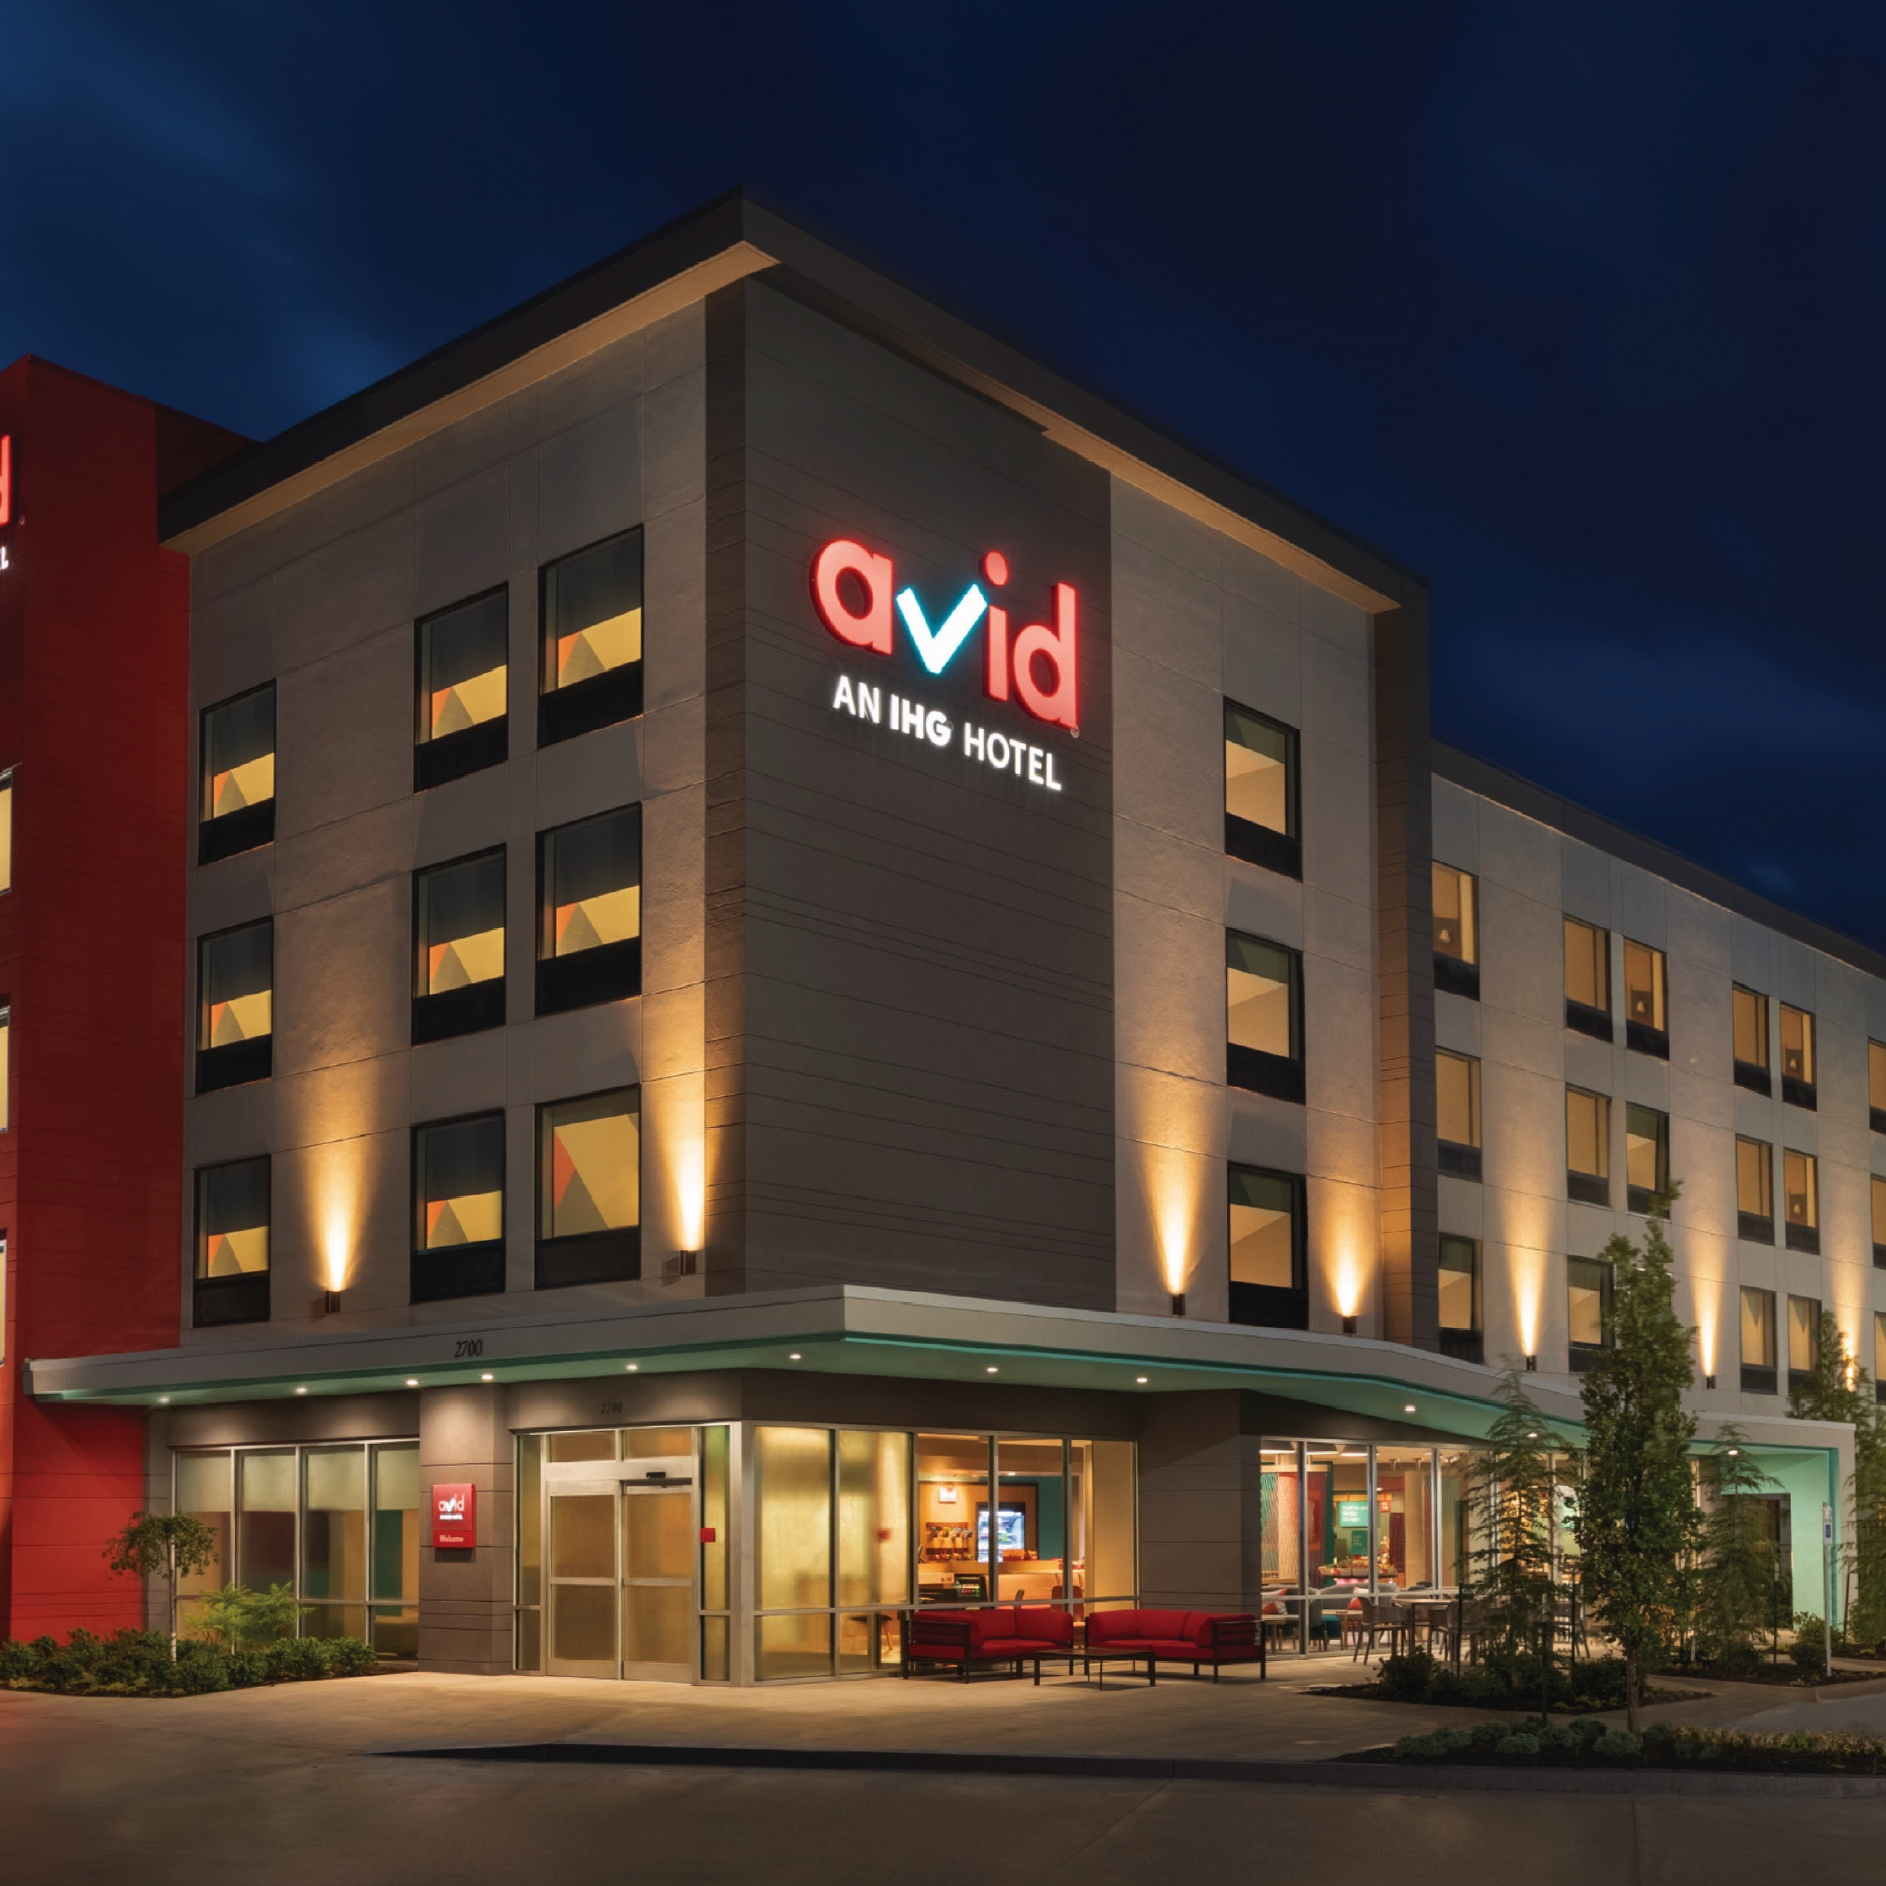 Avid Hotel Exterior Finishes Concept